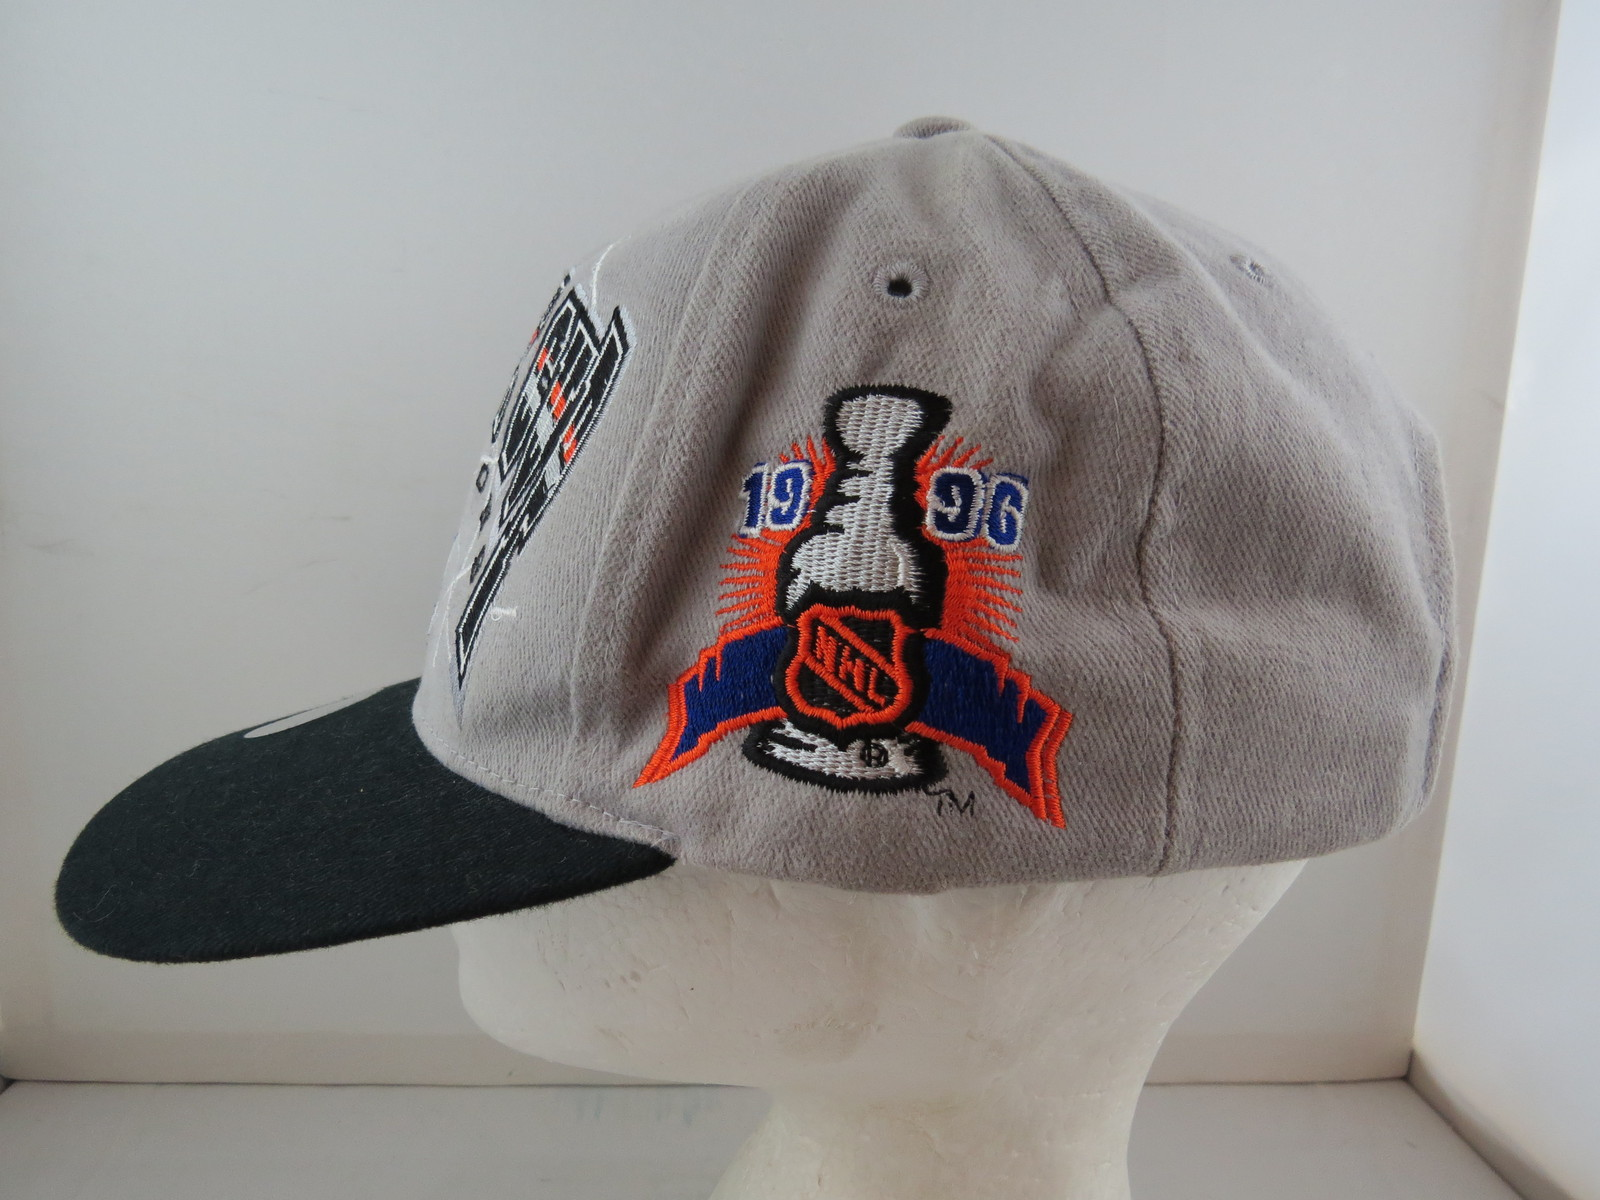 6c0c516bbfa Colorado Avalanche Hat (VTG) - 1996 Stanley Cup Champions by Starter -  Snapback